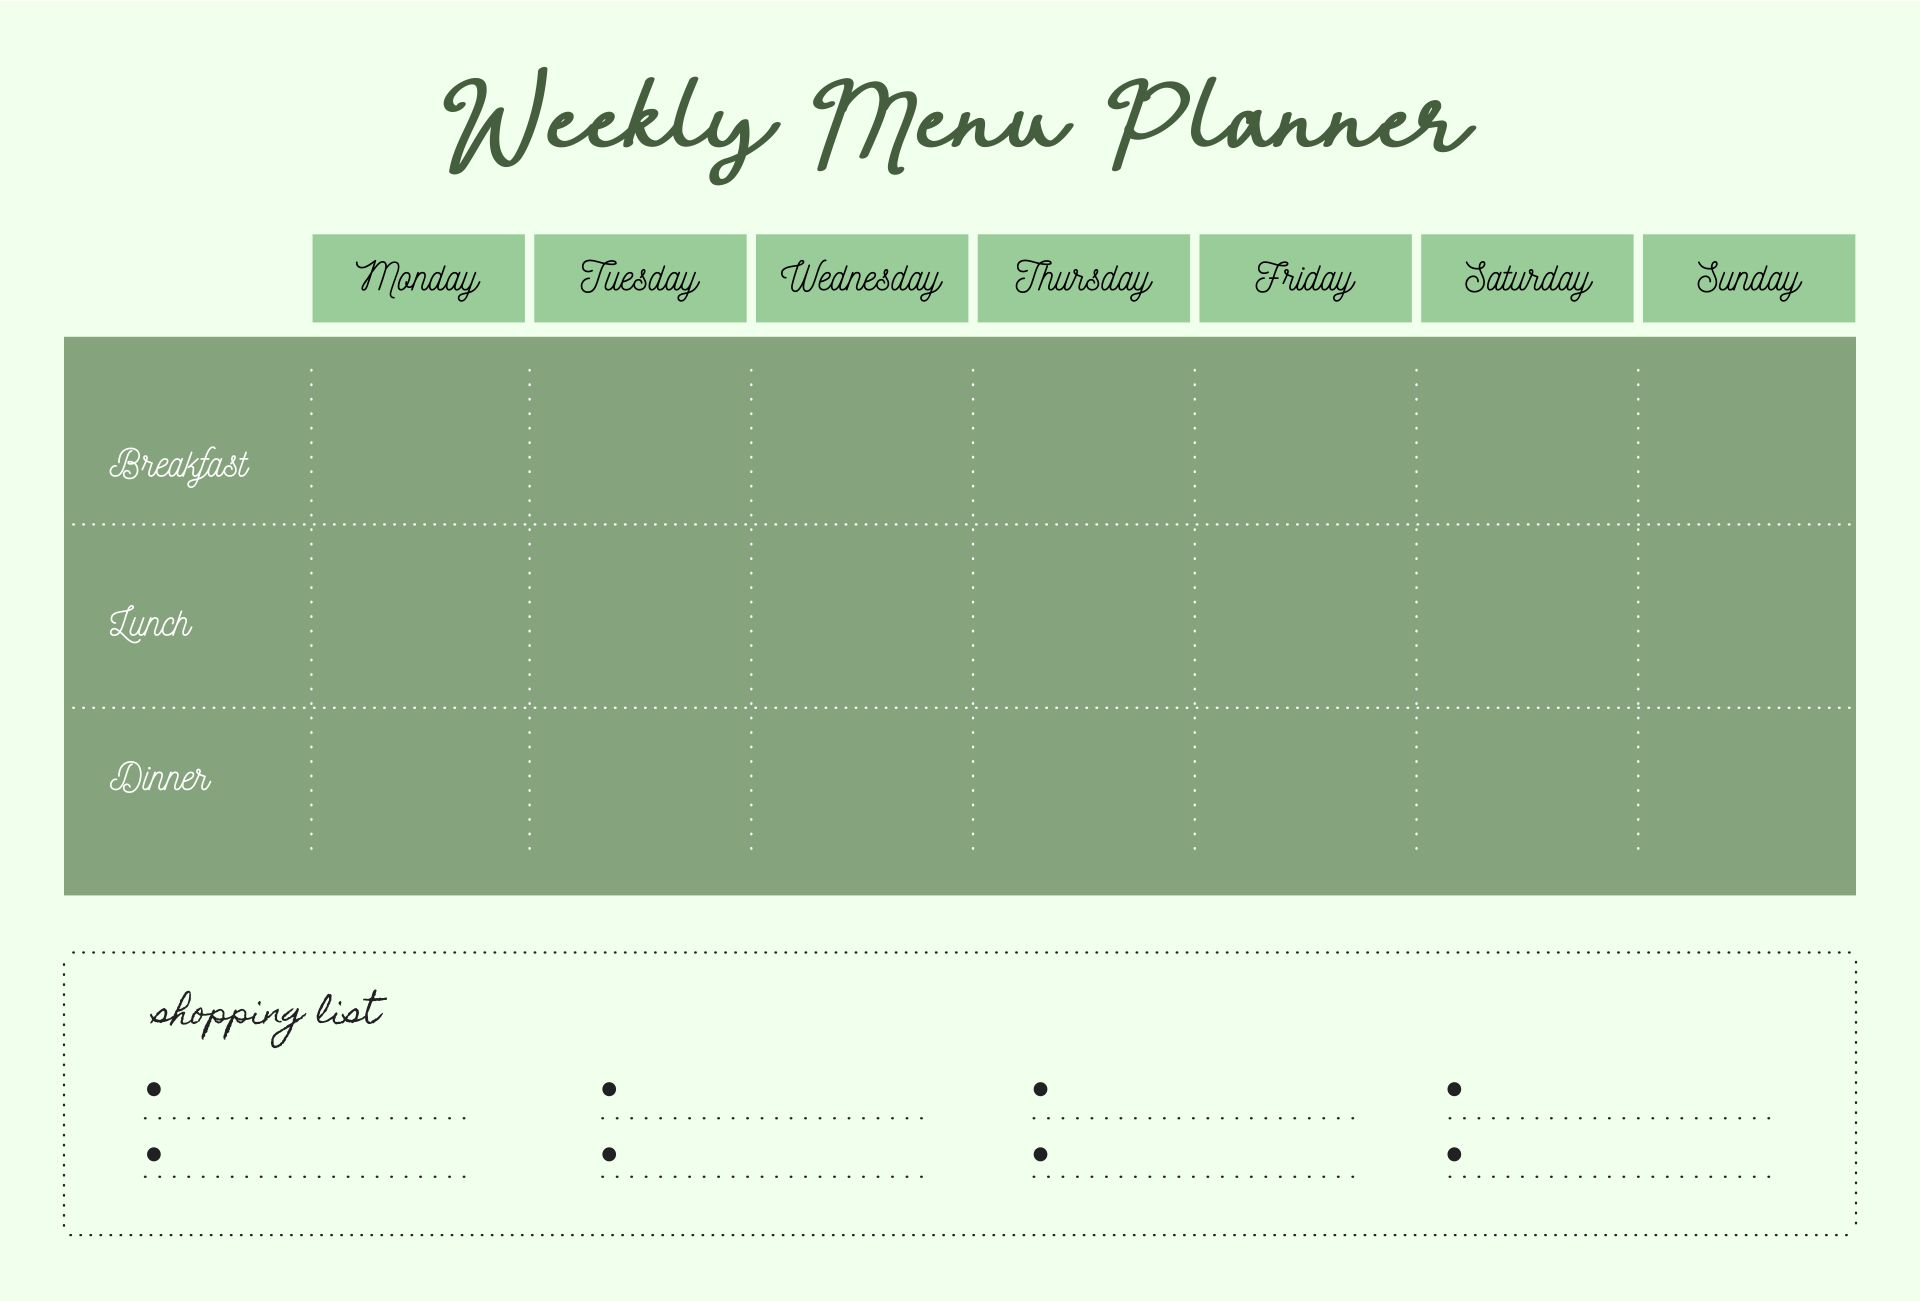 Daily Meal Planner Template from www.printablee.com